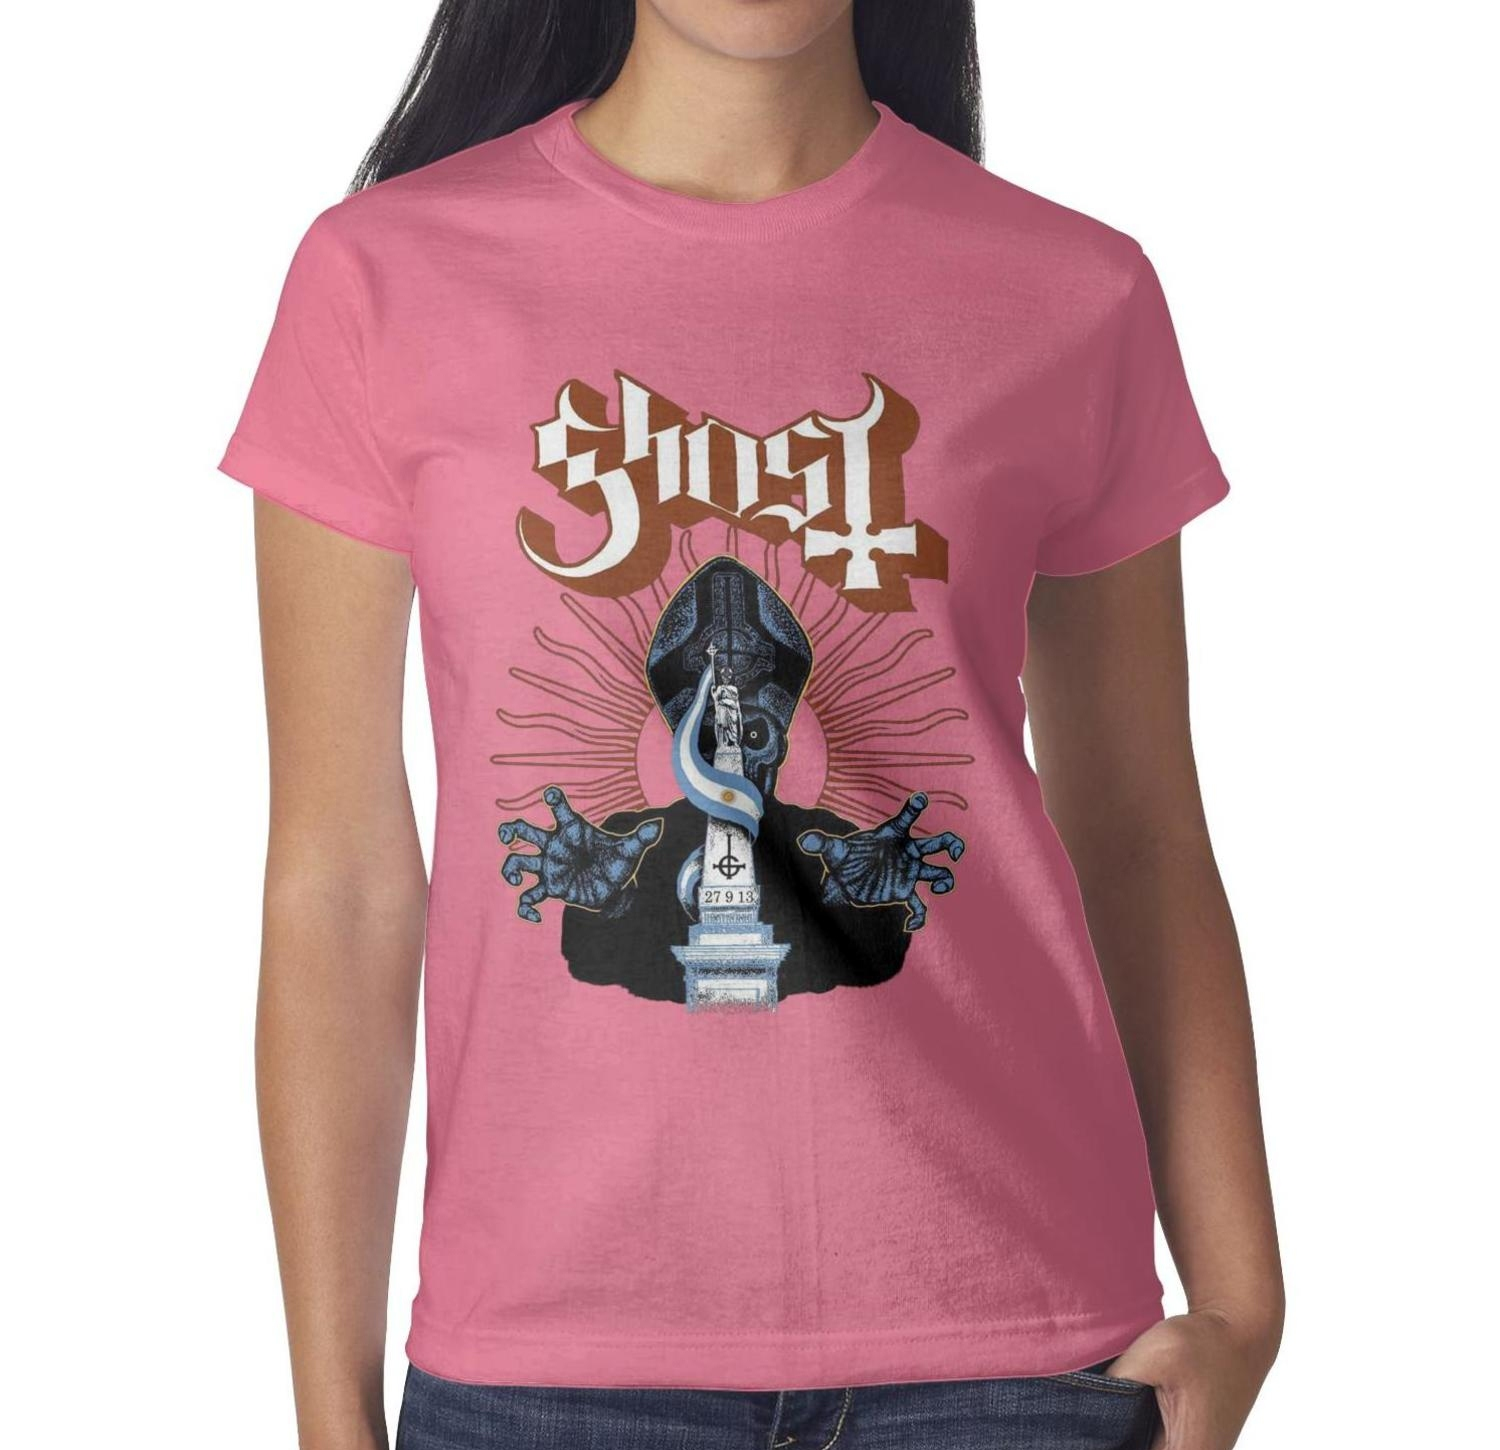 Ladies New  Girl Art Graphic Cotton Body Fit Tops T Shirts 9